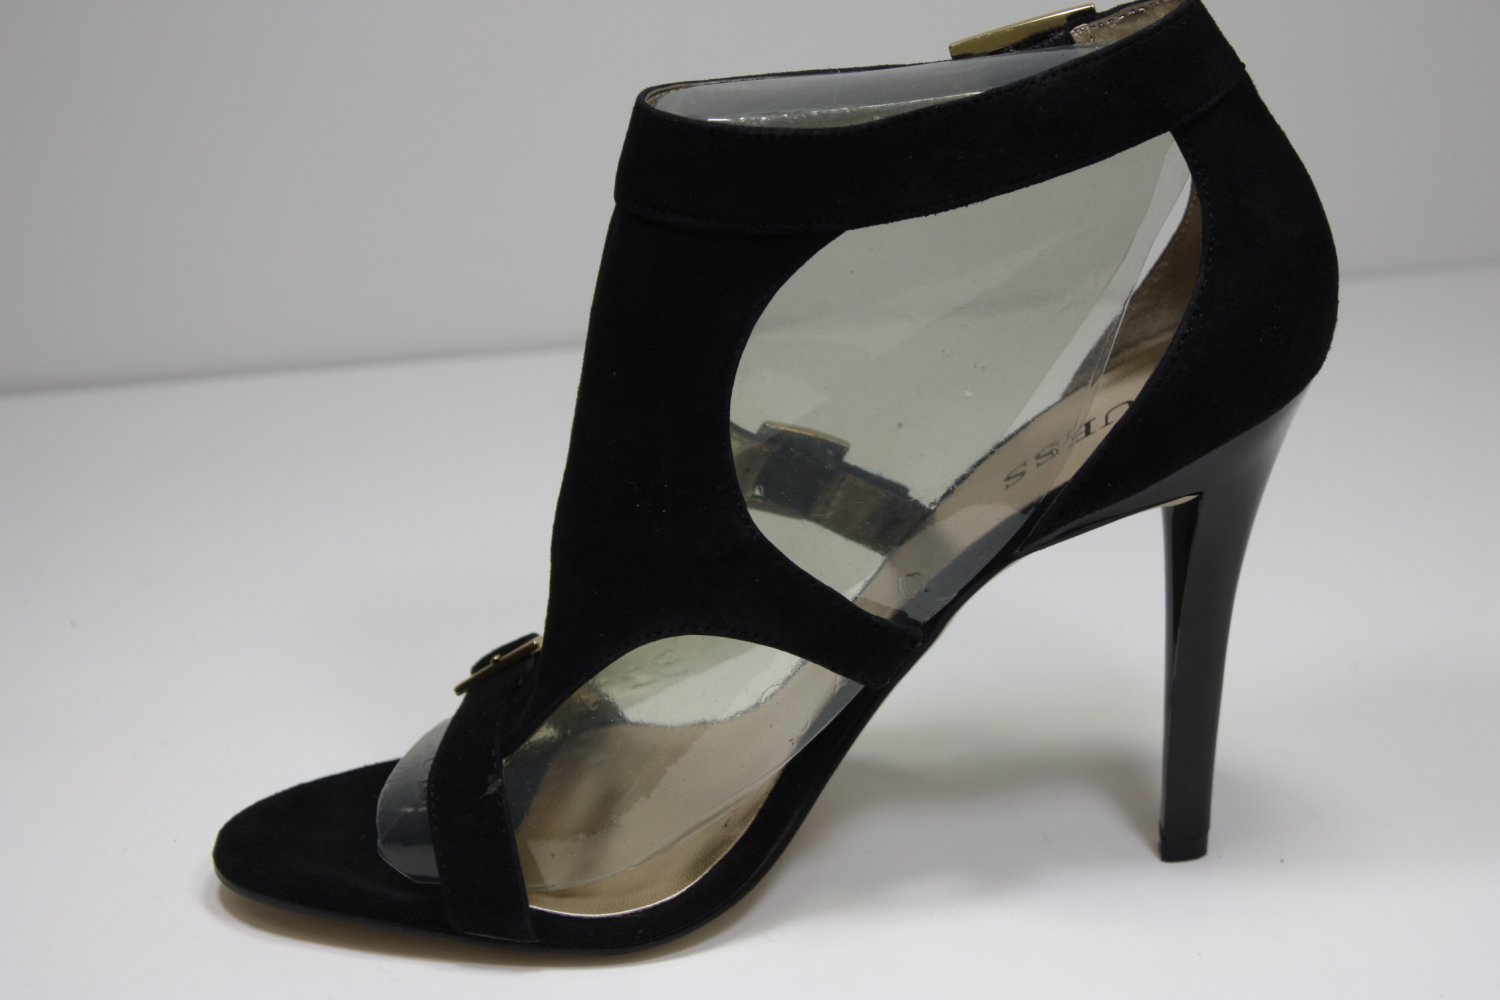 Guess Delicacy Pumps Black Suede Shoes US 8.5 $99